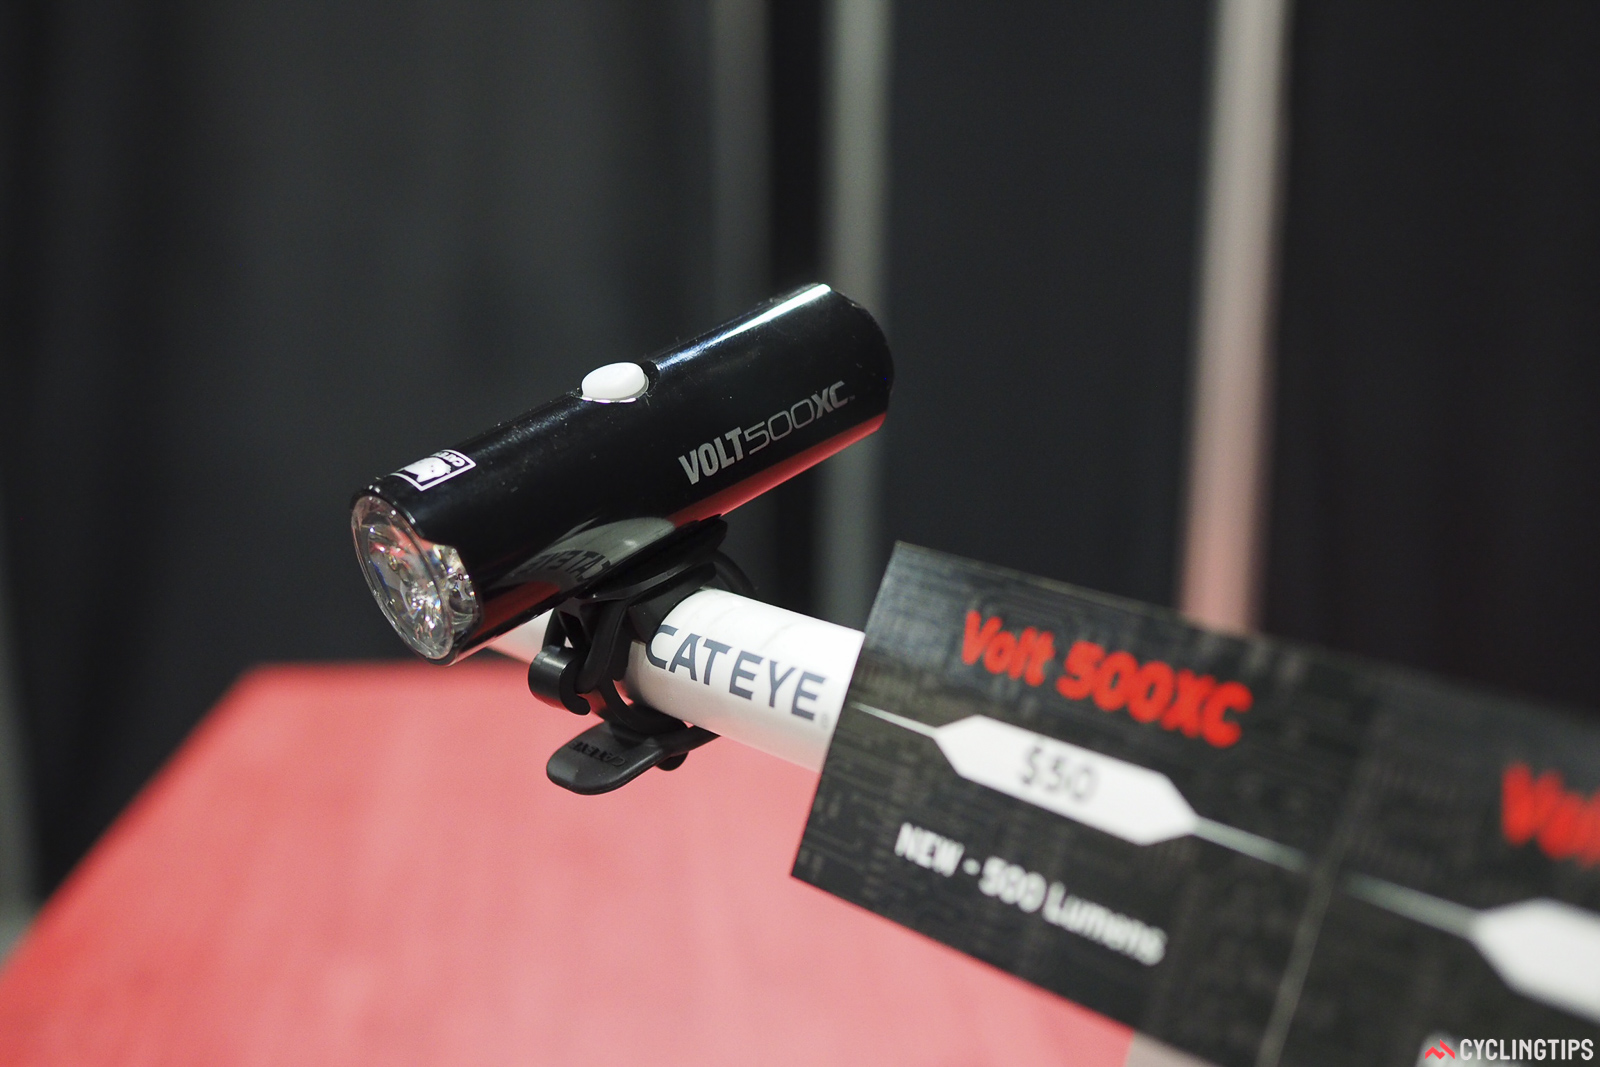 Daylight will soon grow increasingly precious for riders in the northern hemisphere. The CatEye Volt 500XC offers a very usable 500 lumens in a self-contained rechargeable package that costs just US$50.